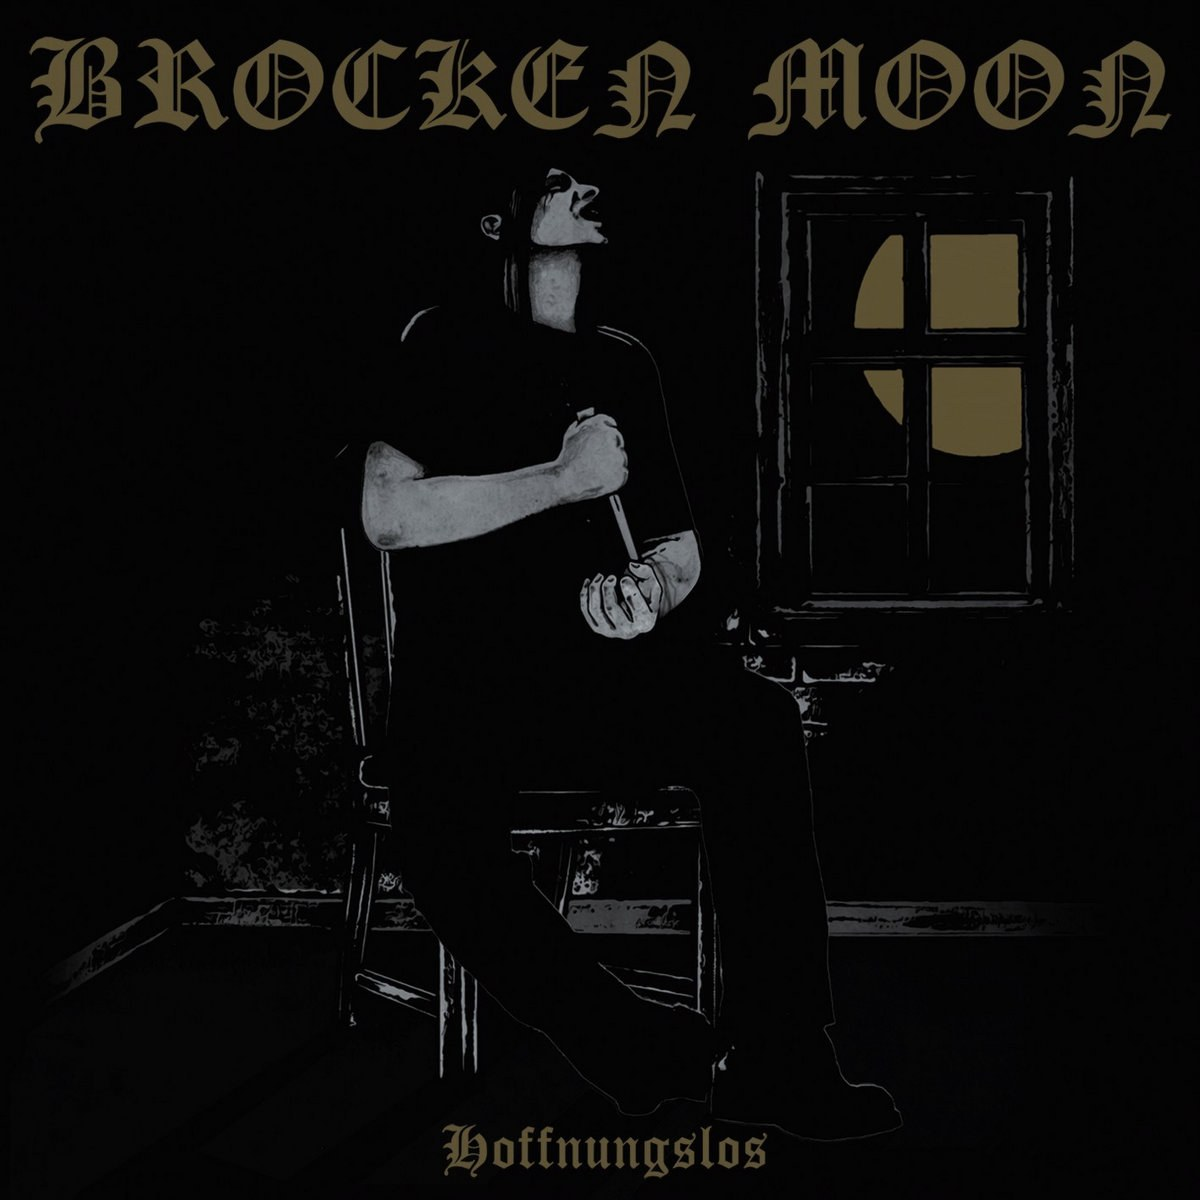 Review for Brocken Moon - Hoffnungslos